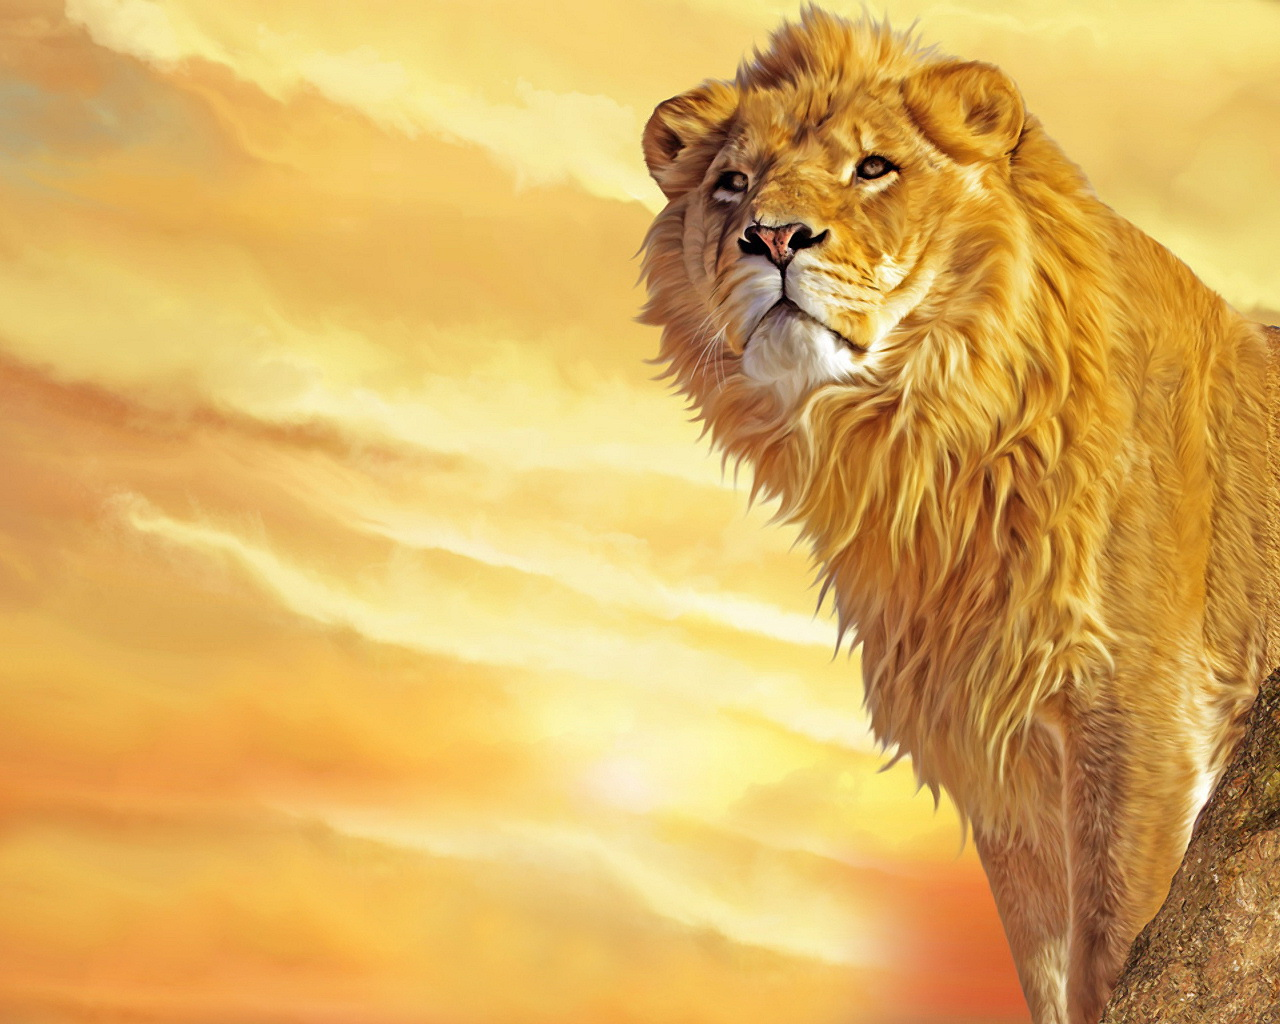 lion wallpaper widescreen 1280x1024